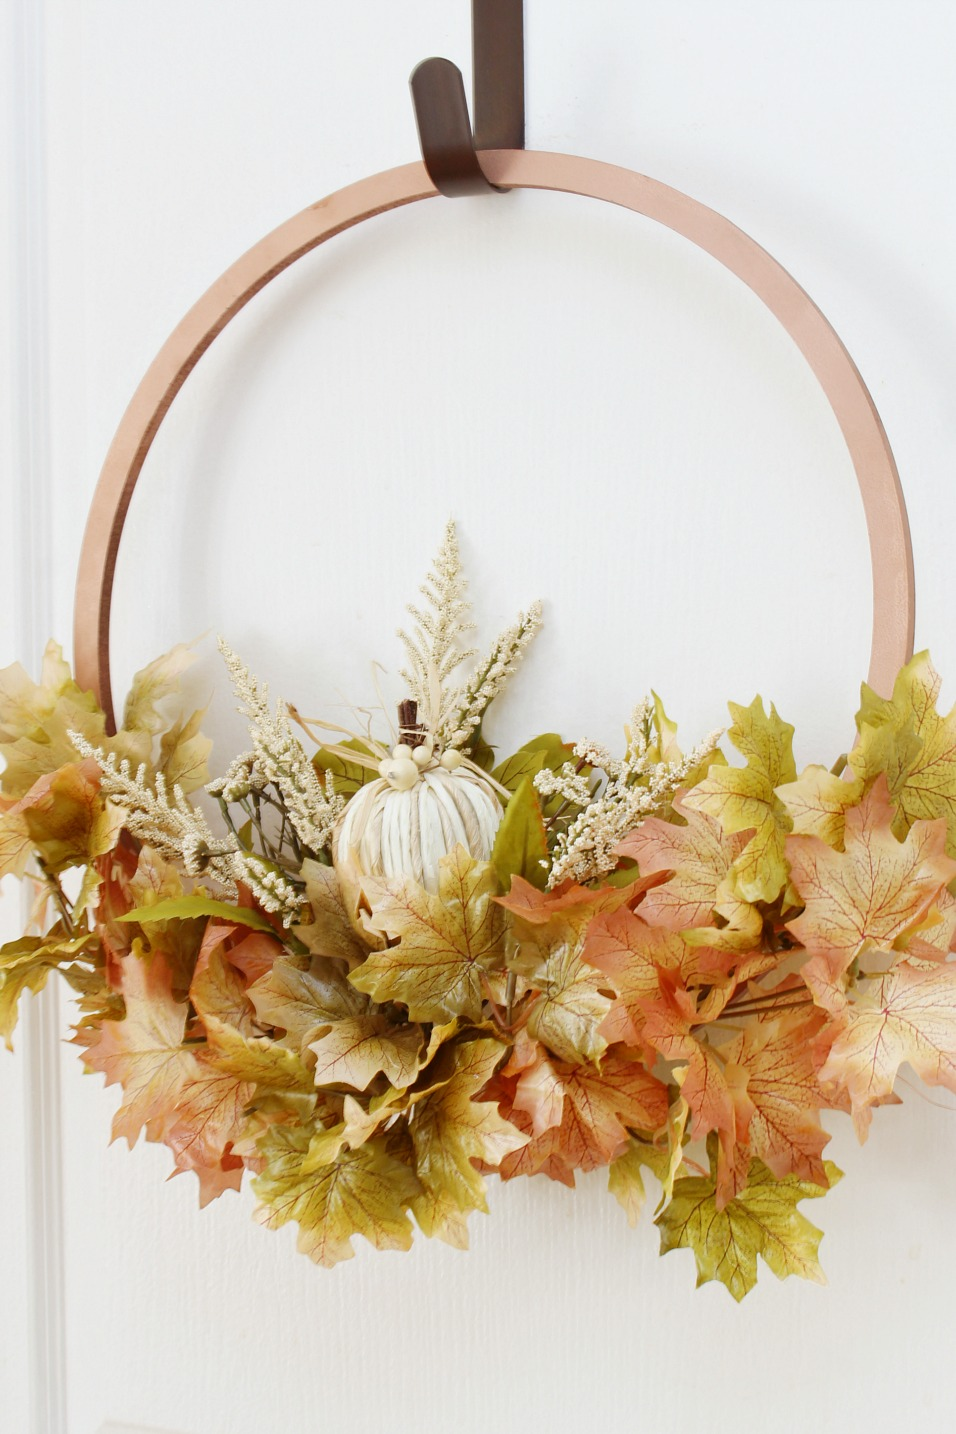 Diy Copper Fall Hoop Wreath Clean And Scentsible